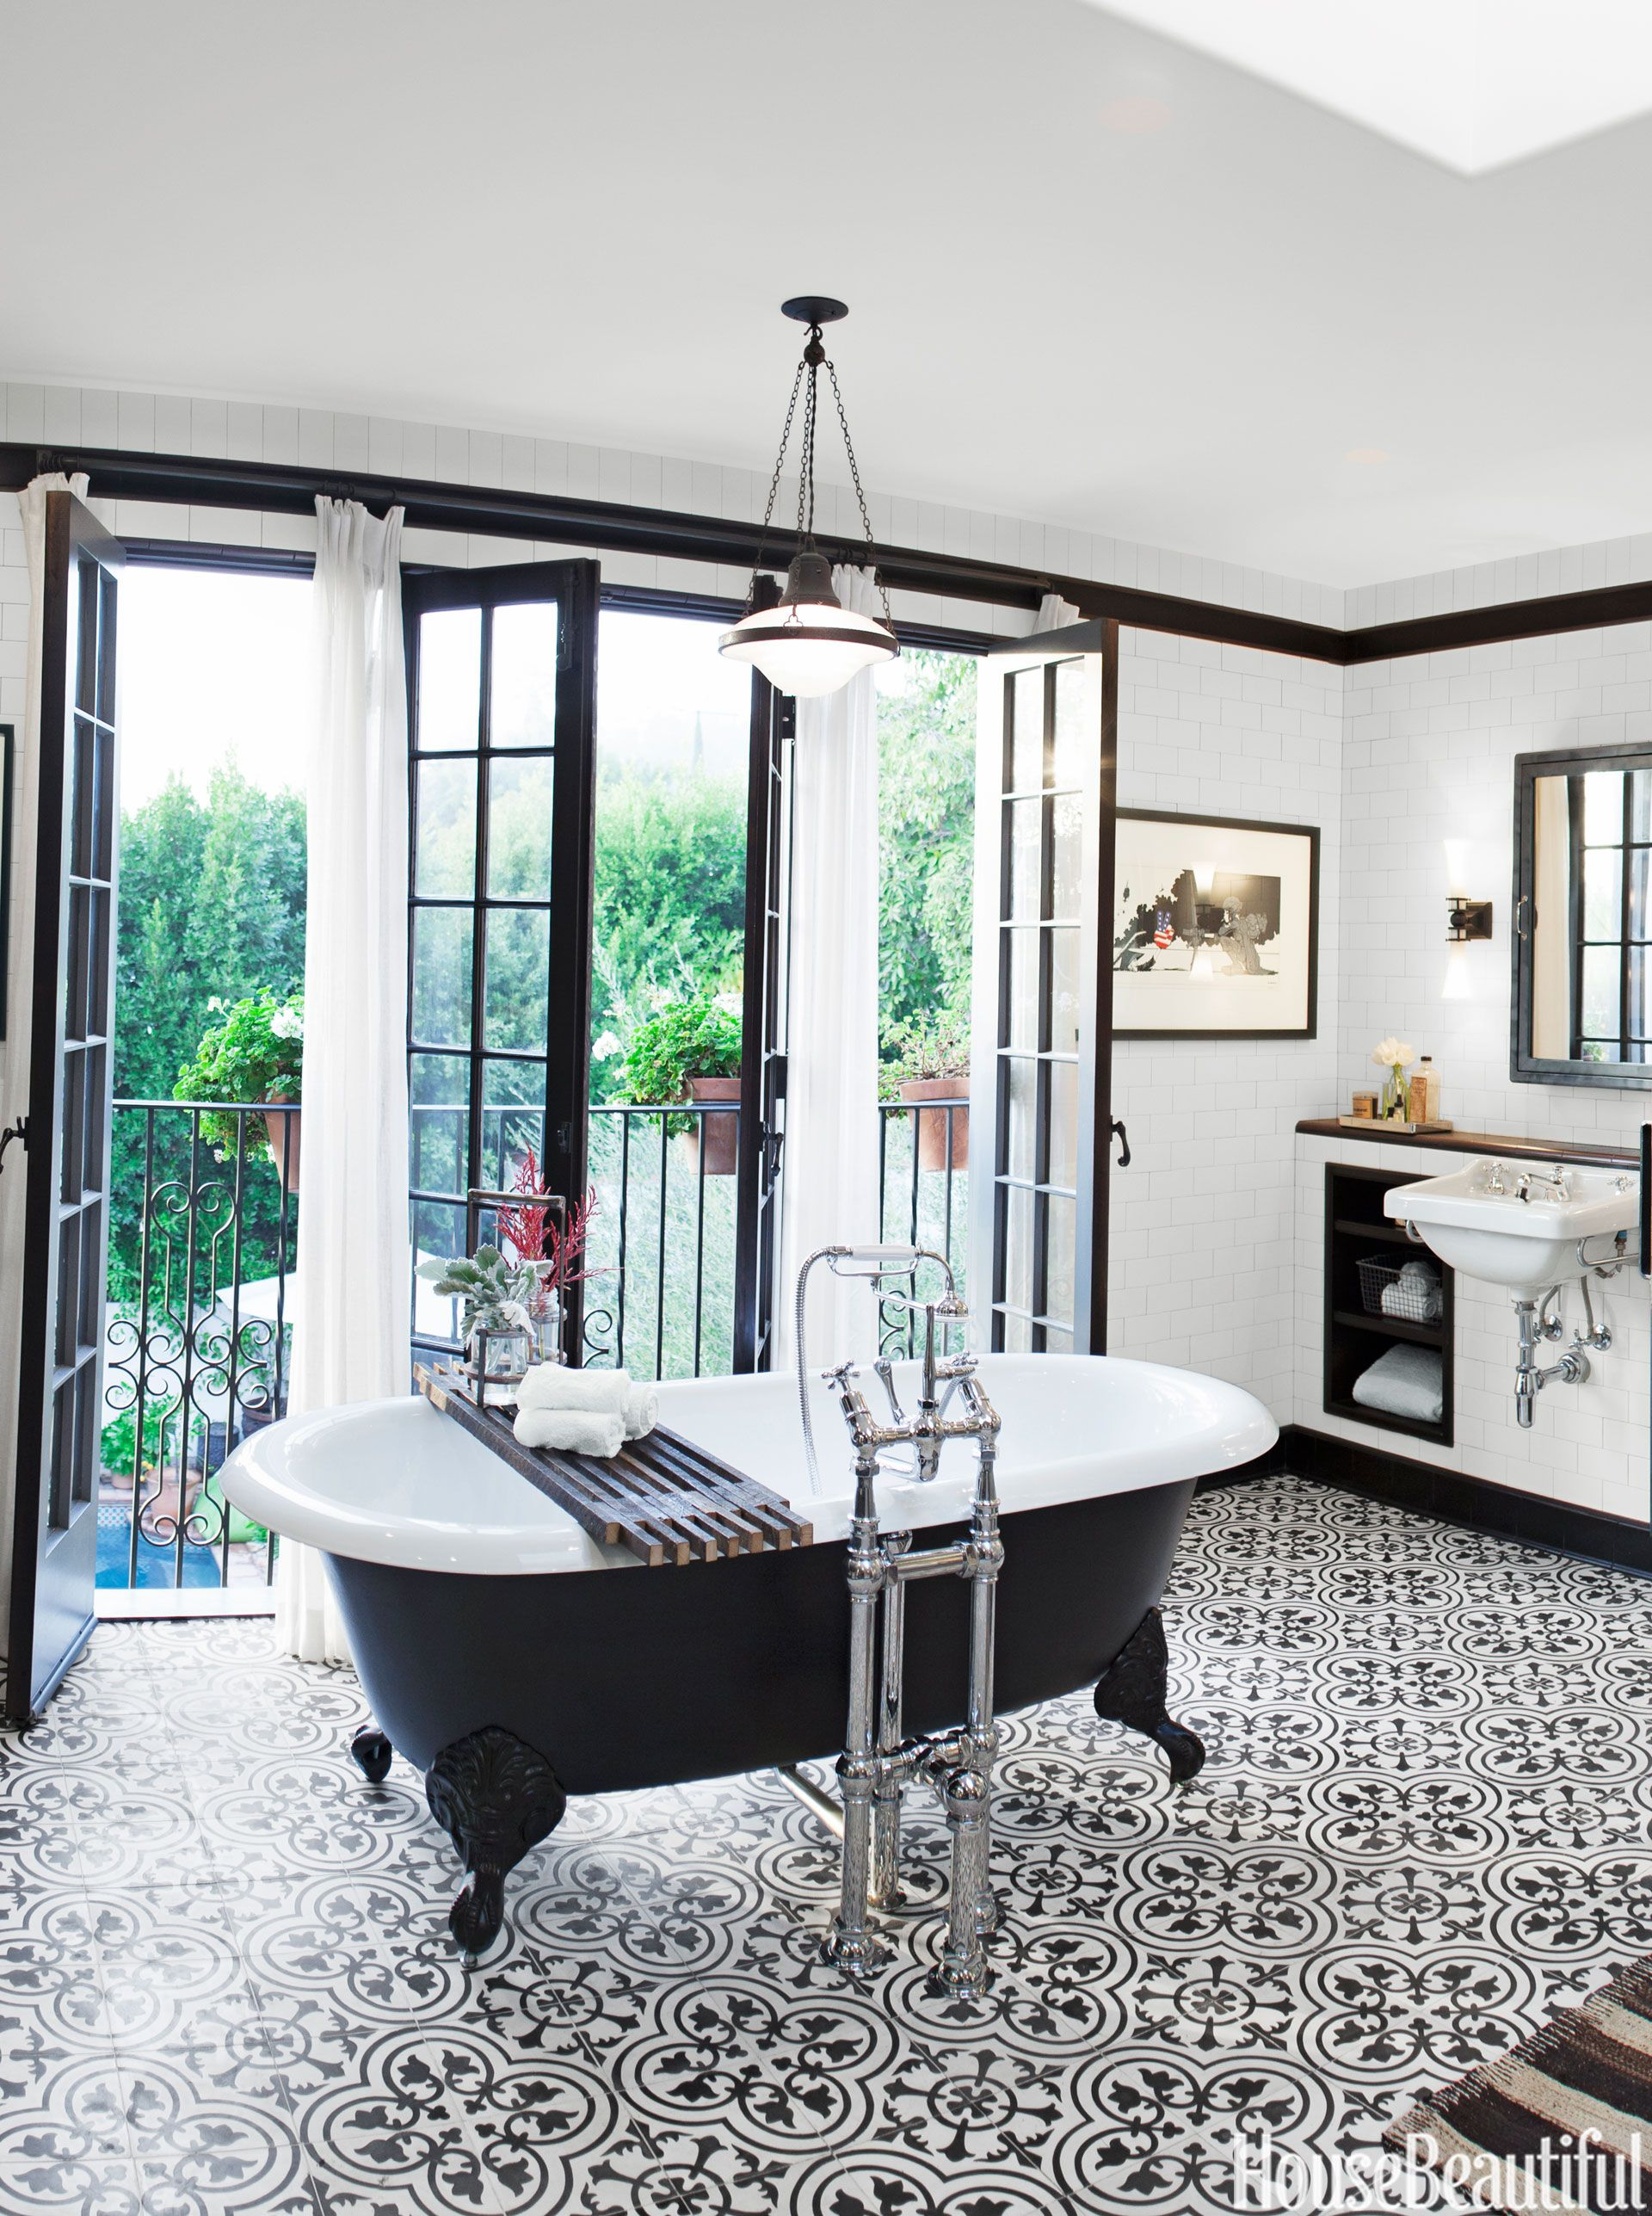 Best Bathrooms of 2013 | Pinterest | Spanish revival, Spanish and ...